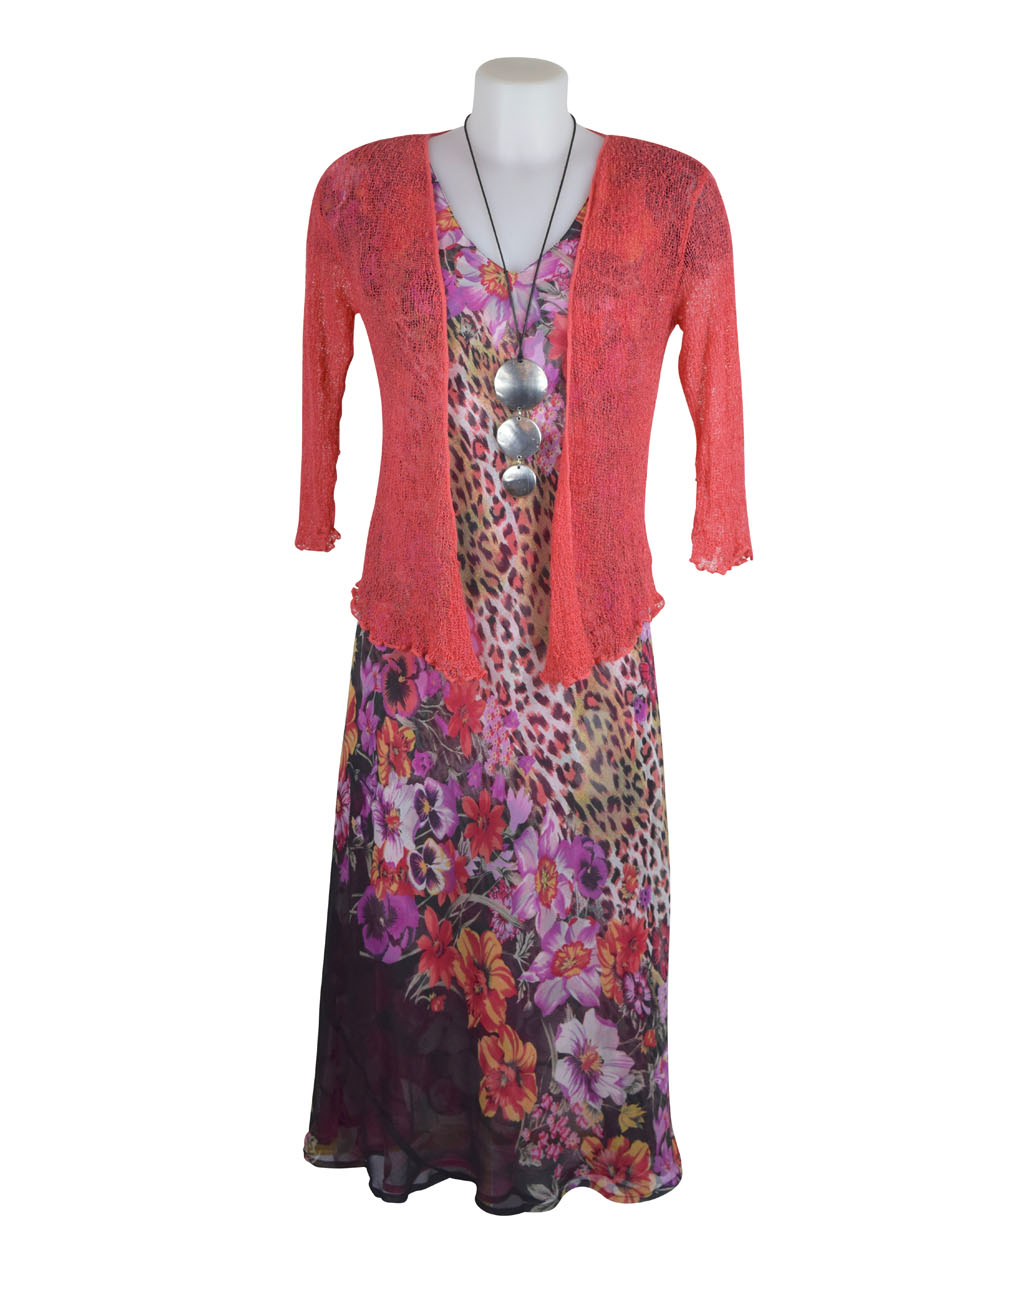 Paramour Reversible 2 In 1 Capped Sleeve Dress Pink Abstract / Leopard Floral E